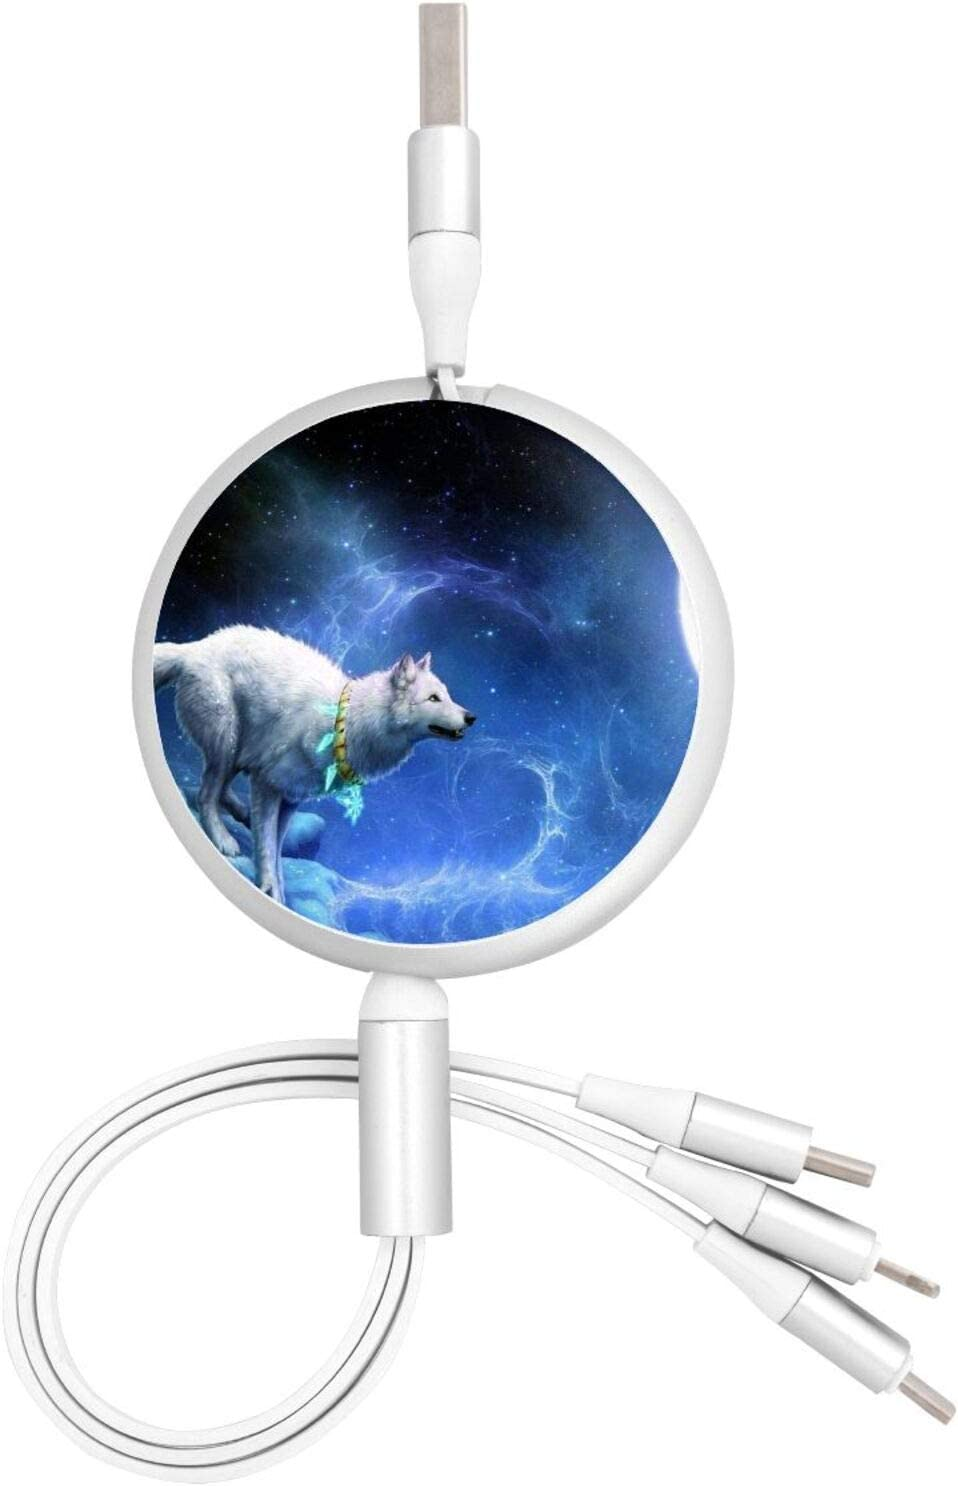 3 in 1 Retractable USB Charger Cable Cord Wolf Under The Moon Fast Charging Washable USB Charge Cord Compatible with Cell Phones Tablets Universal Use